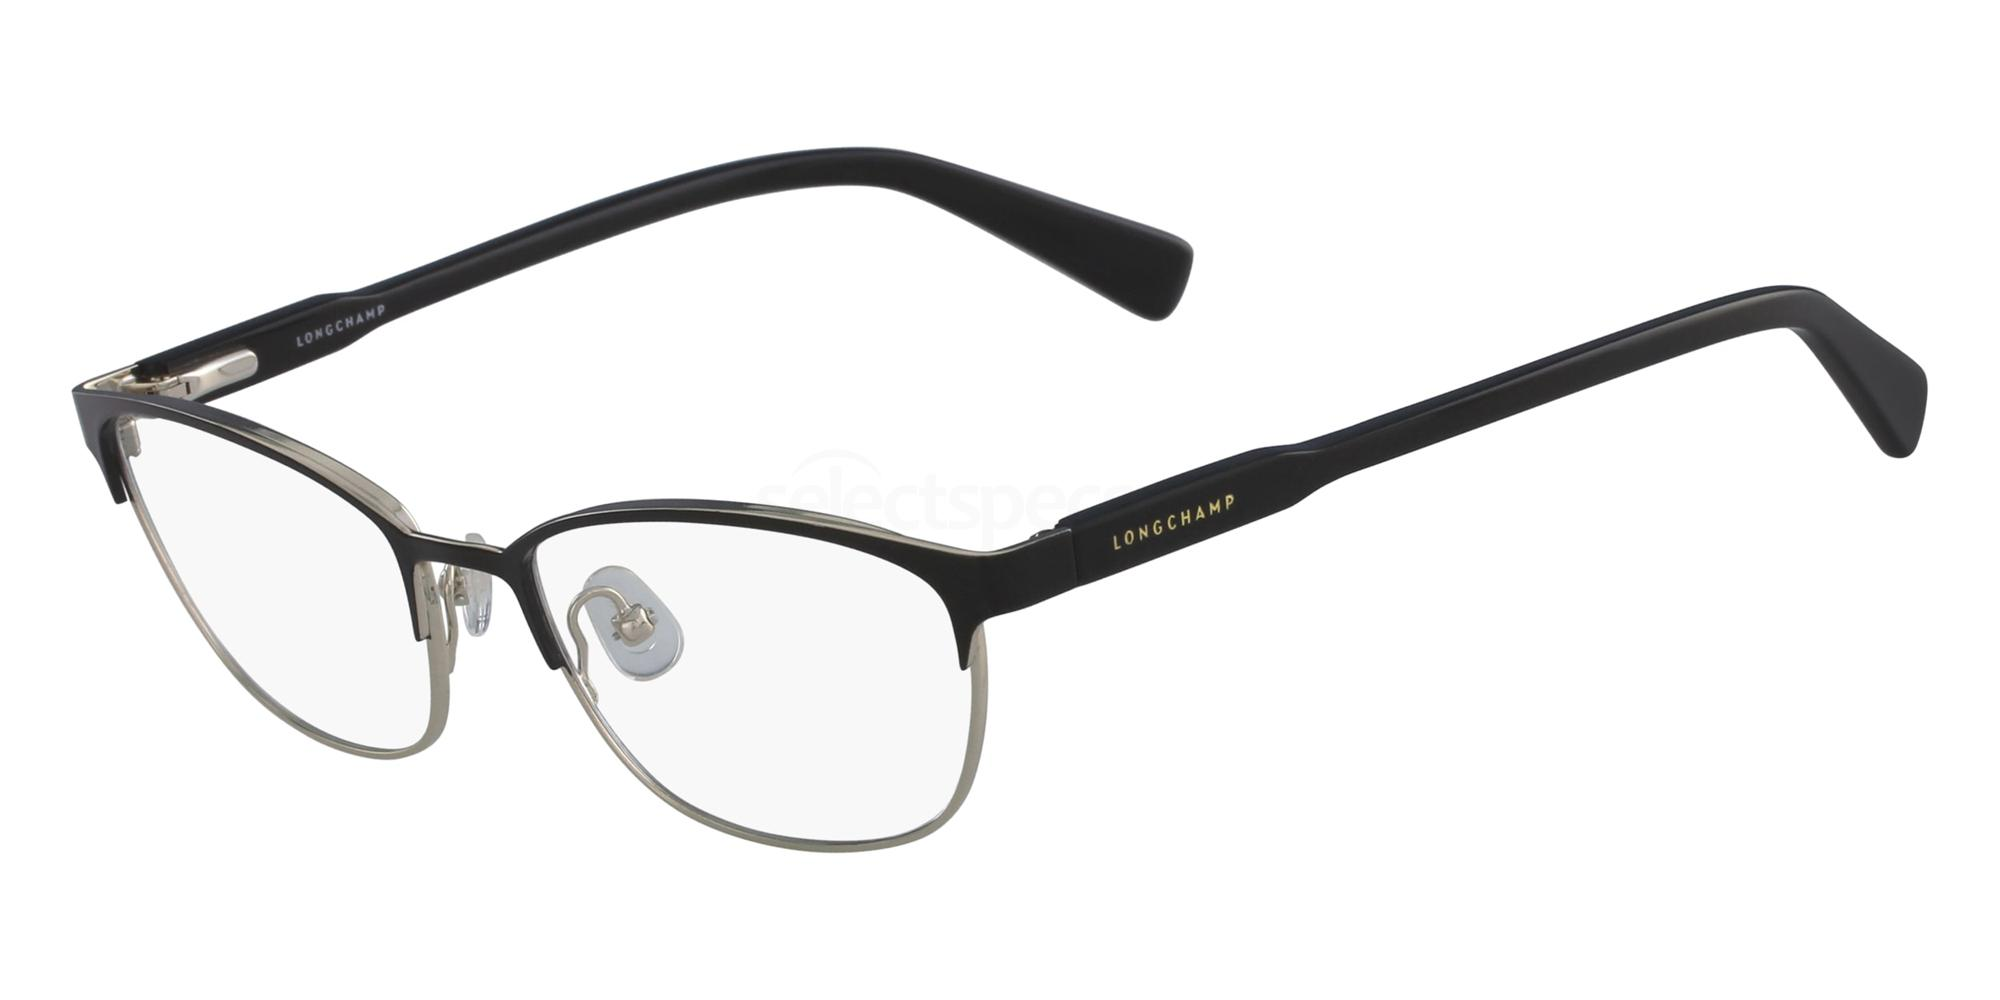 001 LO2107 Glasses, LONGCHAMP